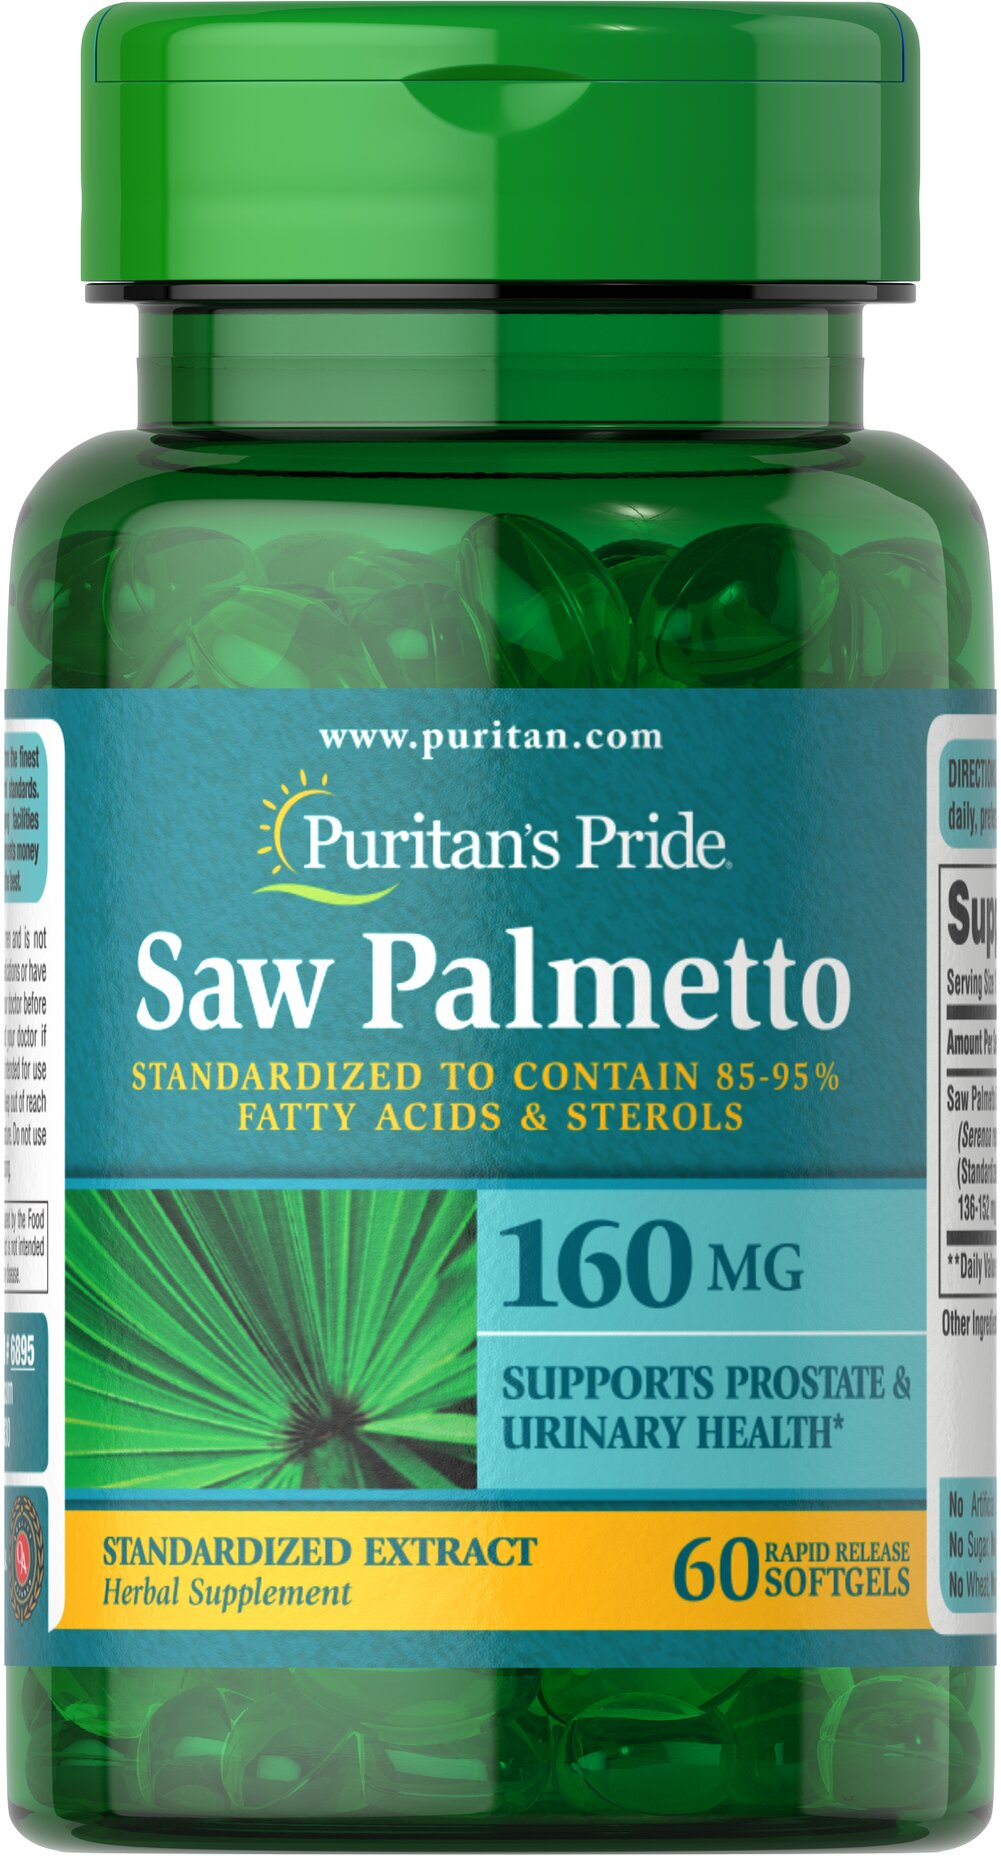 Saw Palmetto Standardized Extract 160 mg <p>Men the world over are discovering the beneficial properties of Saw Palmetto. Saw Palmetto contains phytochemicals, which support prostate health and urinary health.**</p><p>Our Saw Palmetto formula is fully assayed and standardized to ensure that each softgel contains 85-95% fatty acids and active sterols, which guarantees bioactivity.**</p> 60 Softgels 160 mg $13.99